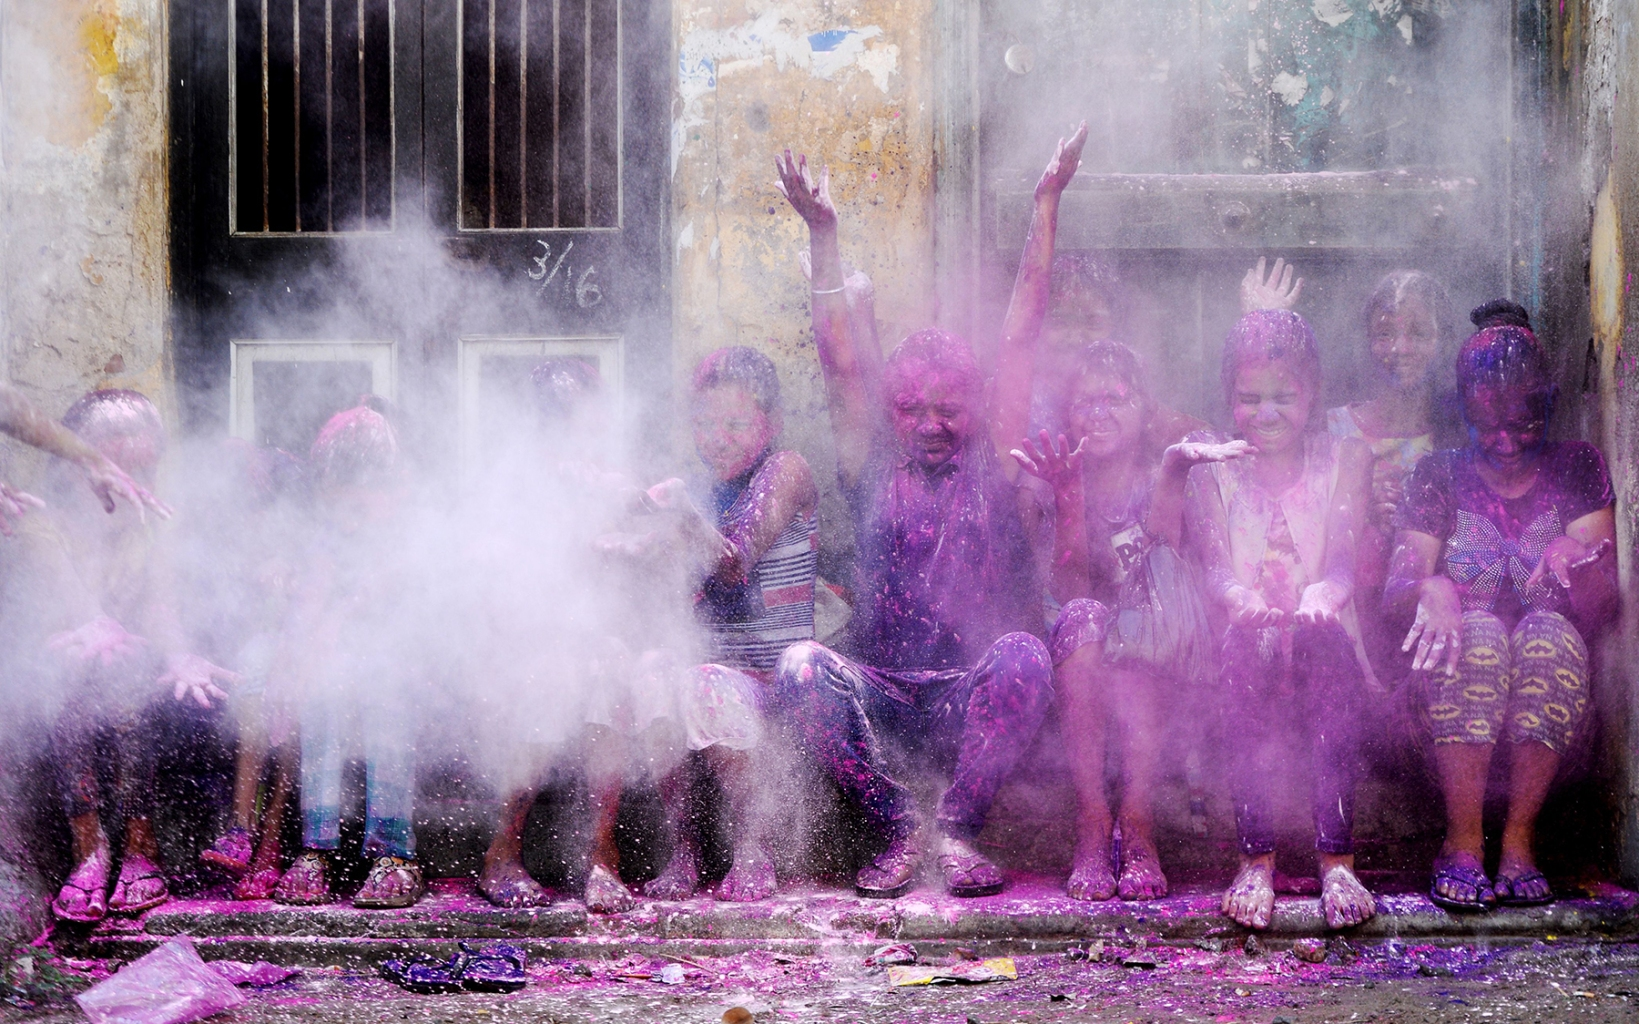 Indian children throw colored powder in the air during Holi spring festival celebrations in Chennai on March 21. ARUN SANKAR/AFP/Getty Images